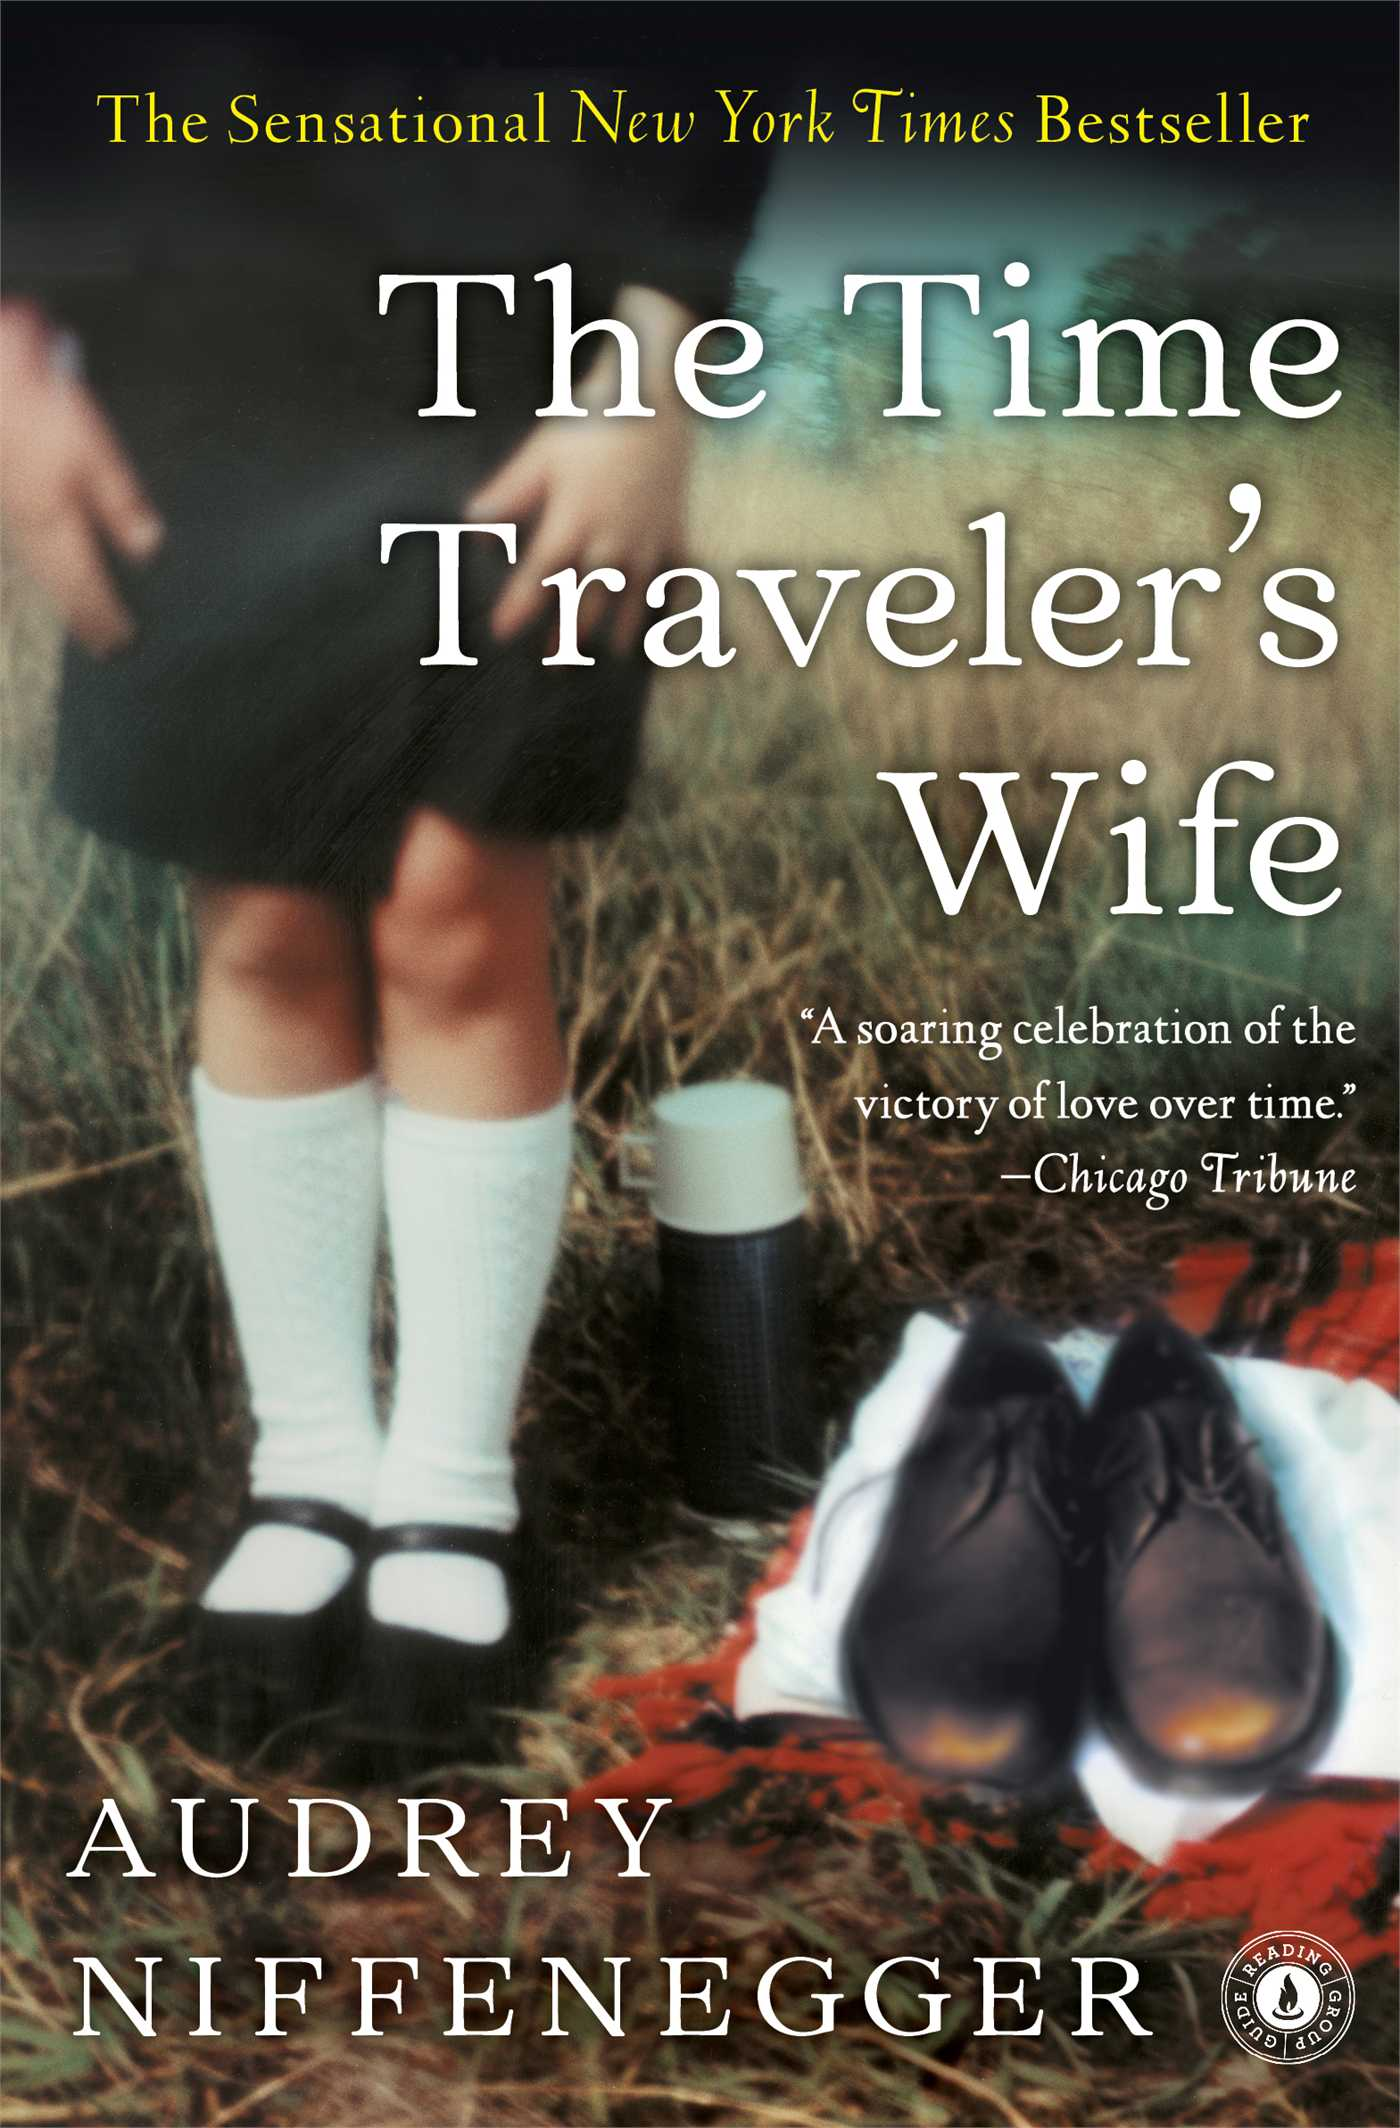 Time-travelers-wife-9781476764832_hr